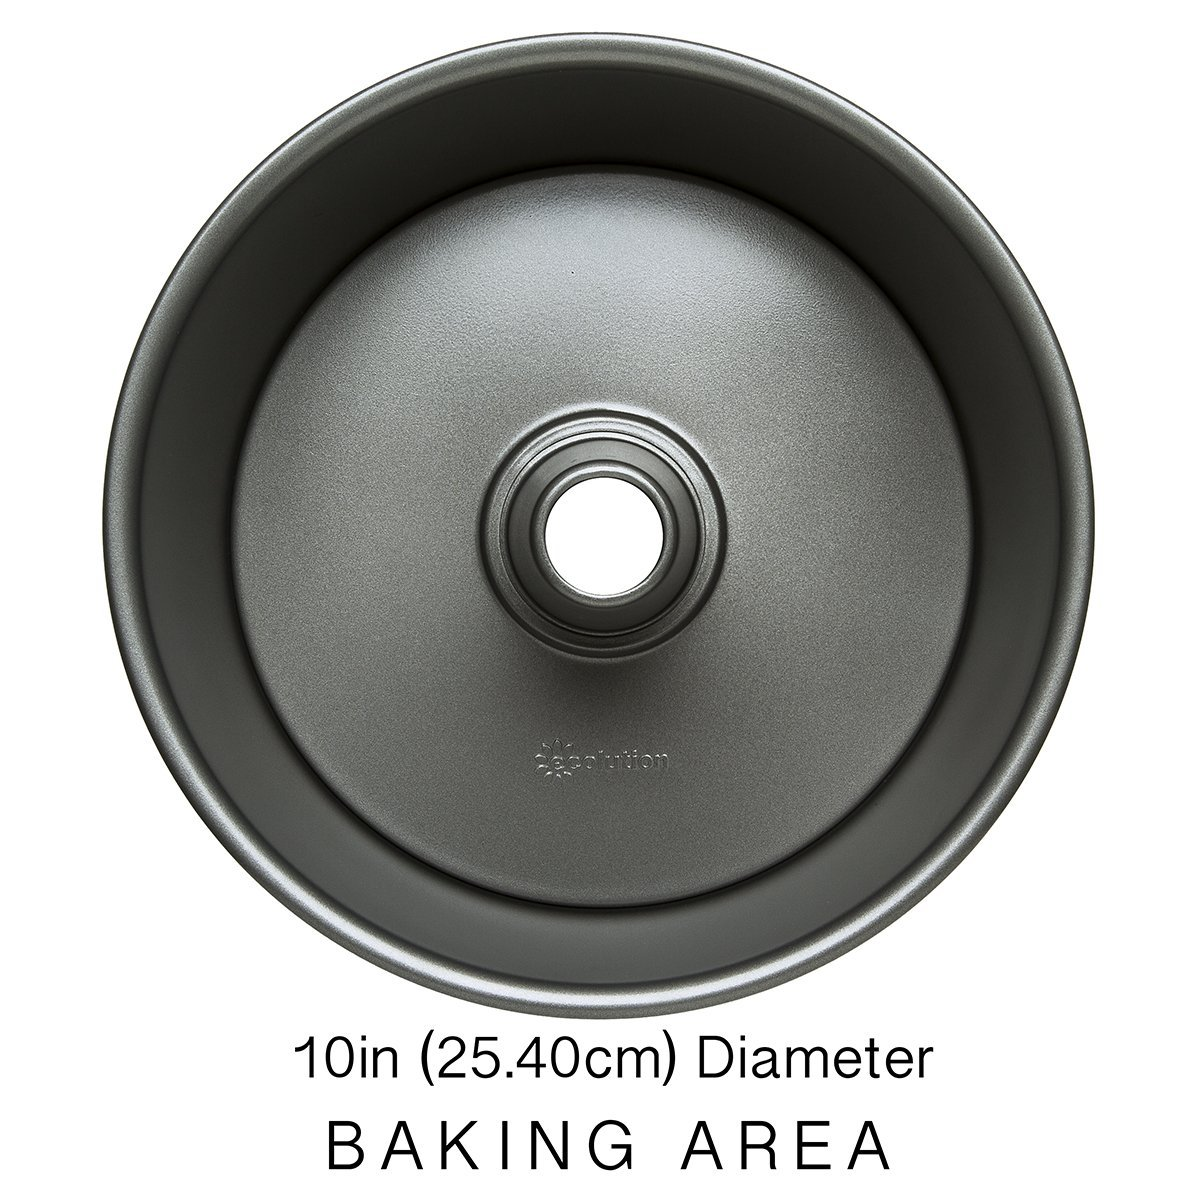 """Ecolution Bakeins Angel Food Cake Pan – PFOA, BPA, and PTFE Free Non-Stick Coating – Heavy Duty Carbon Steel – Dishwasher Safe – Gray – 9.5"""" x 9.5"""" x 4.125"""" by Ecolution (Image #3)"""